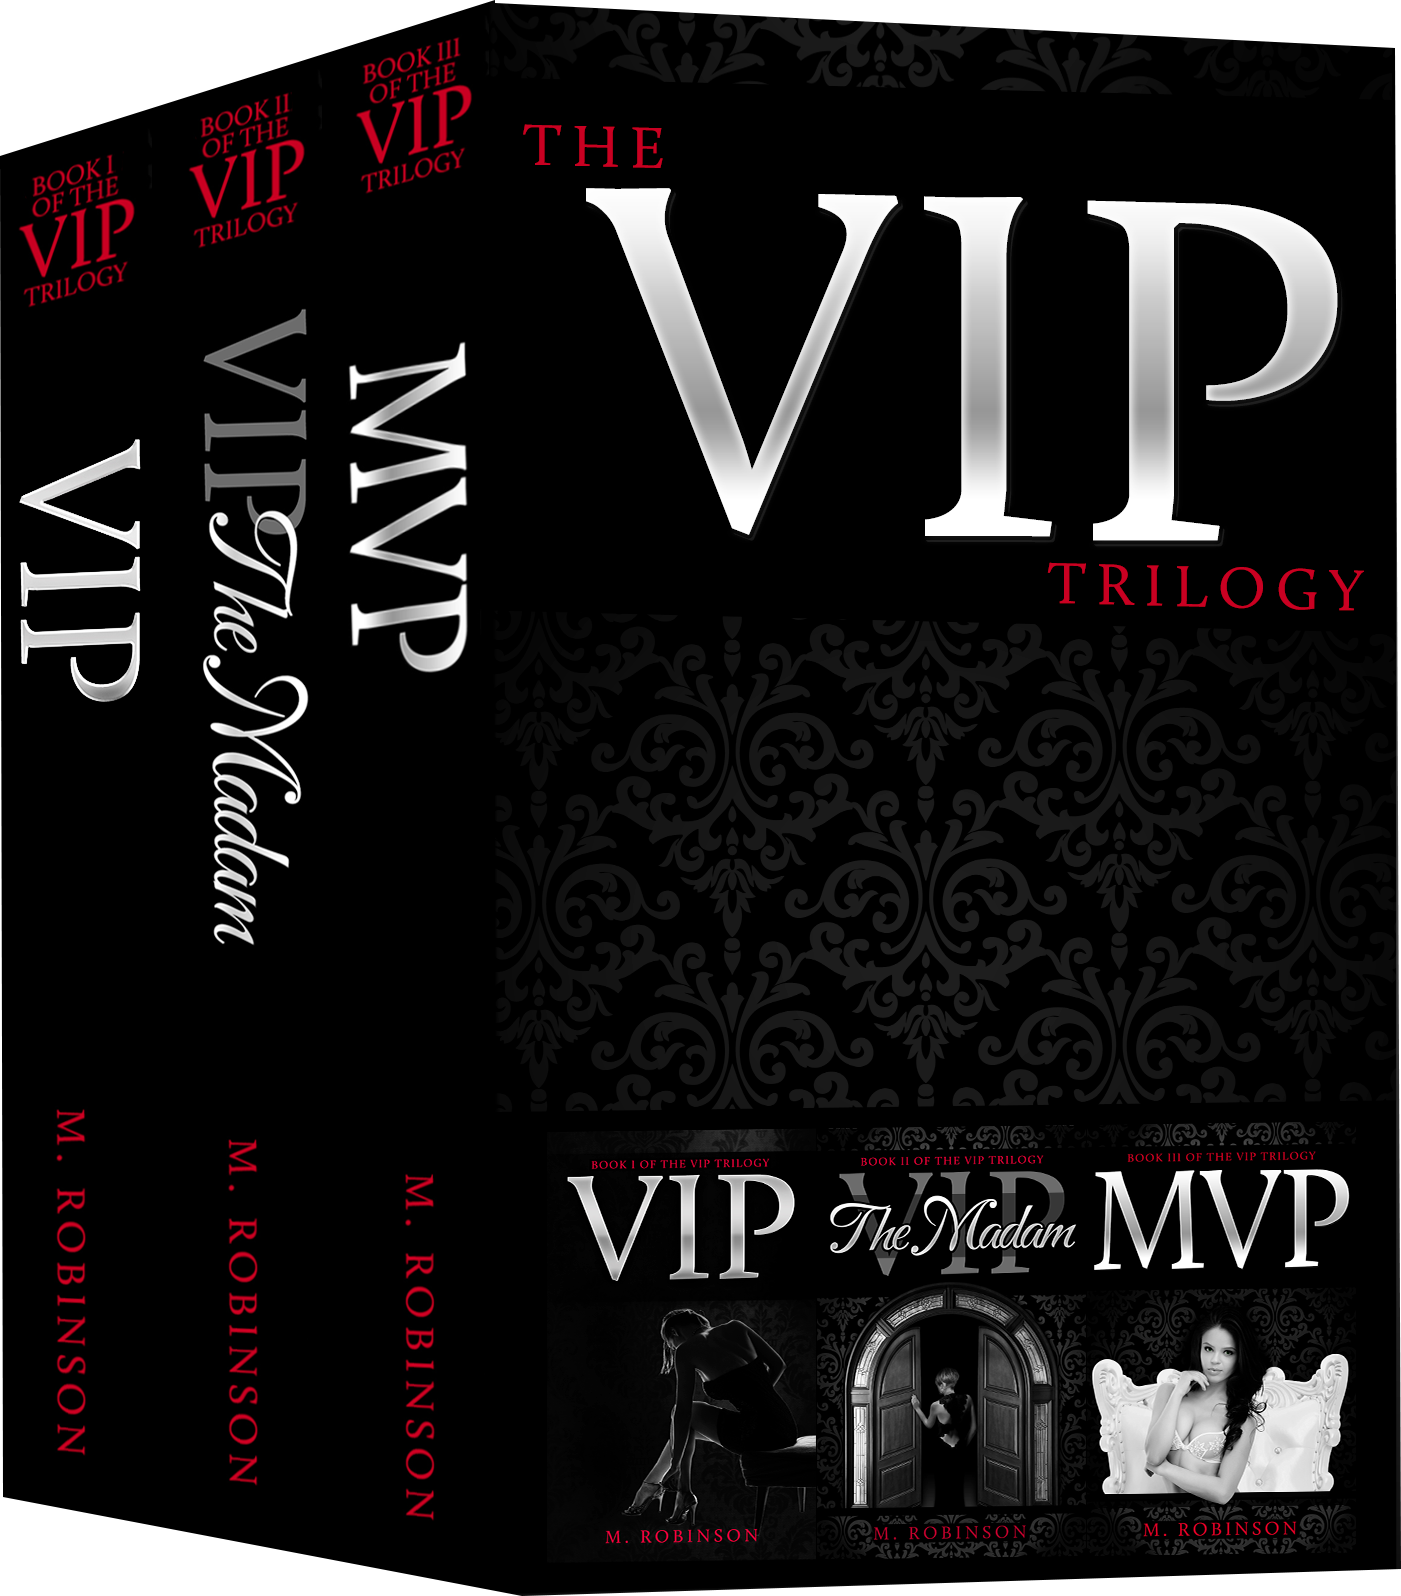 VIP Triology by M. Robinson Book Cover